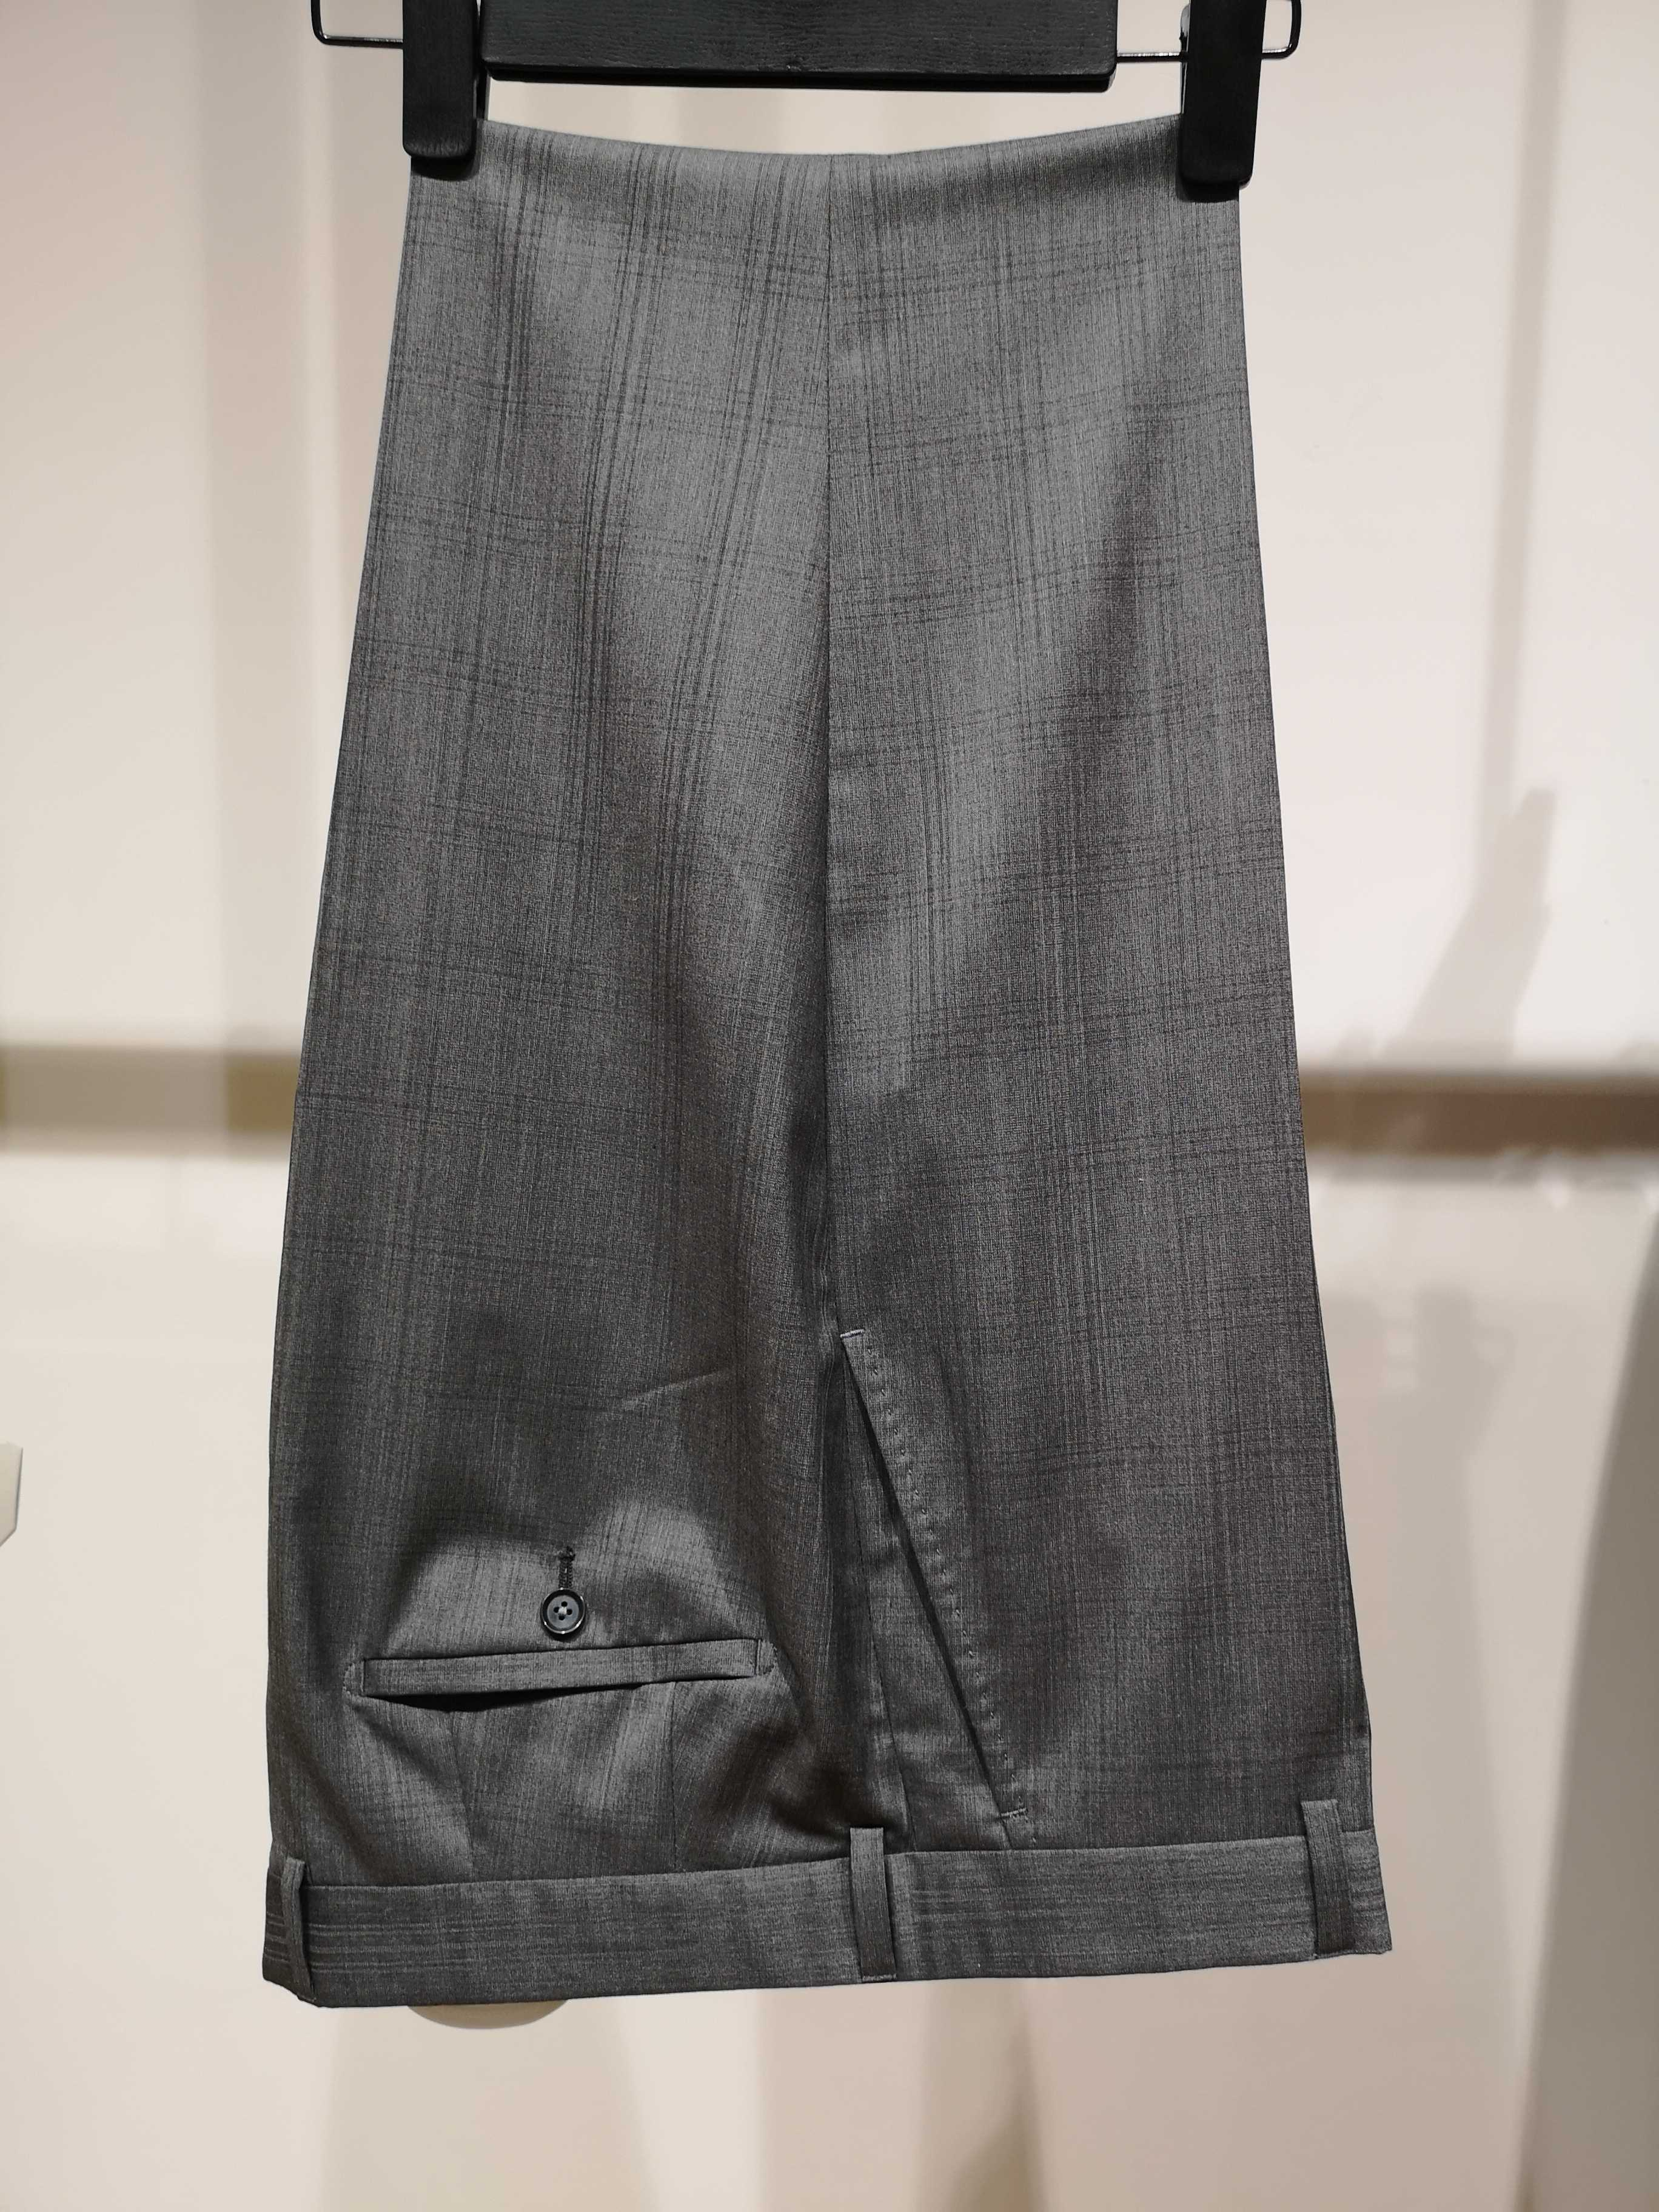 Mens trousers mulberry silk trousers straight tube summer wool loose casual pants middle-aged new thin suit pants